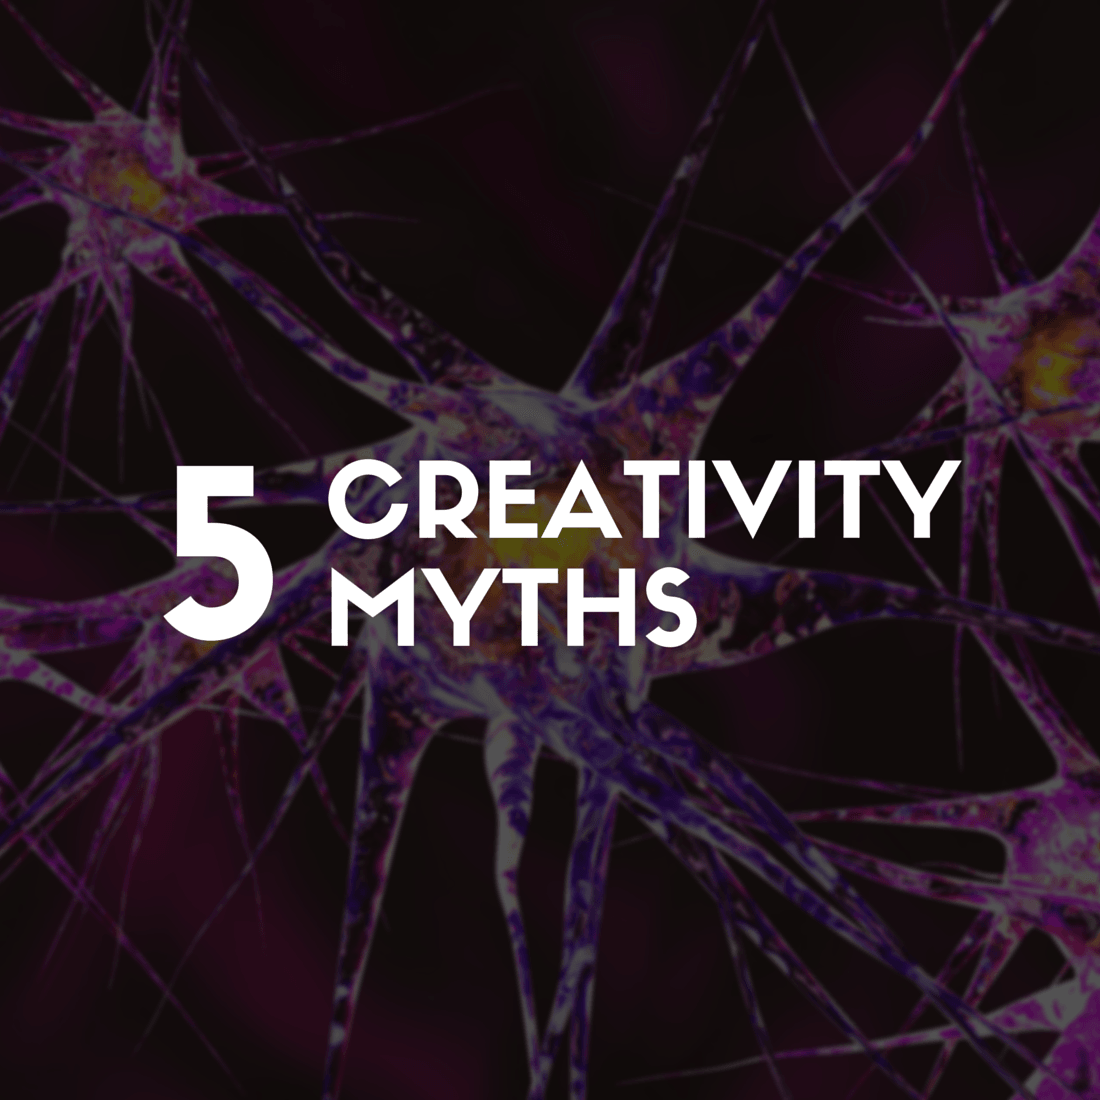 5 Creativity Myths You Probably Believe